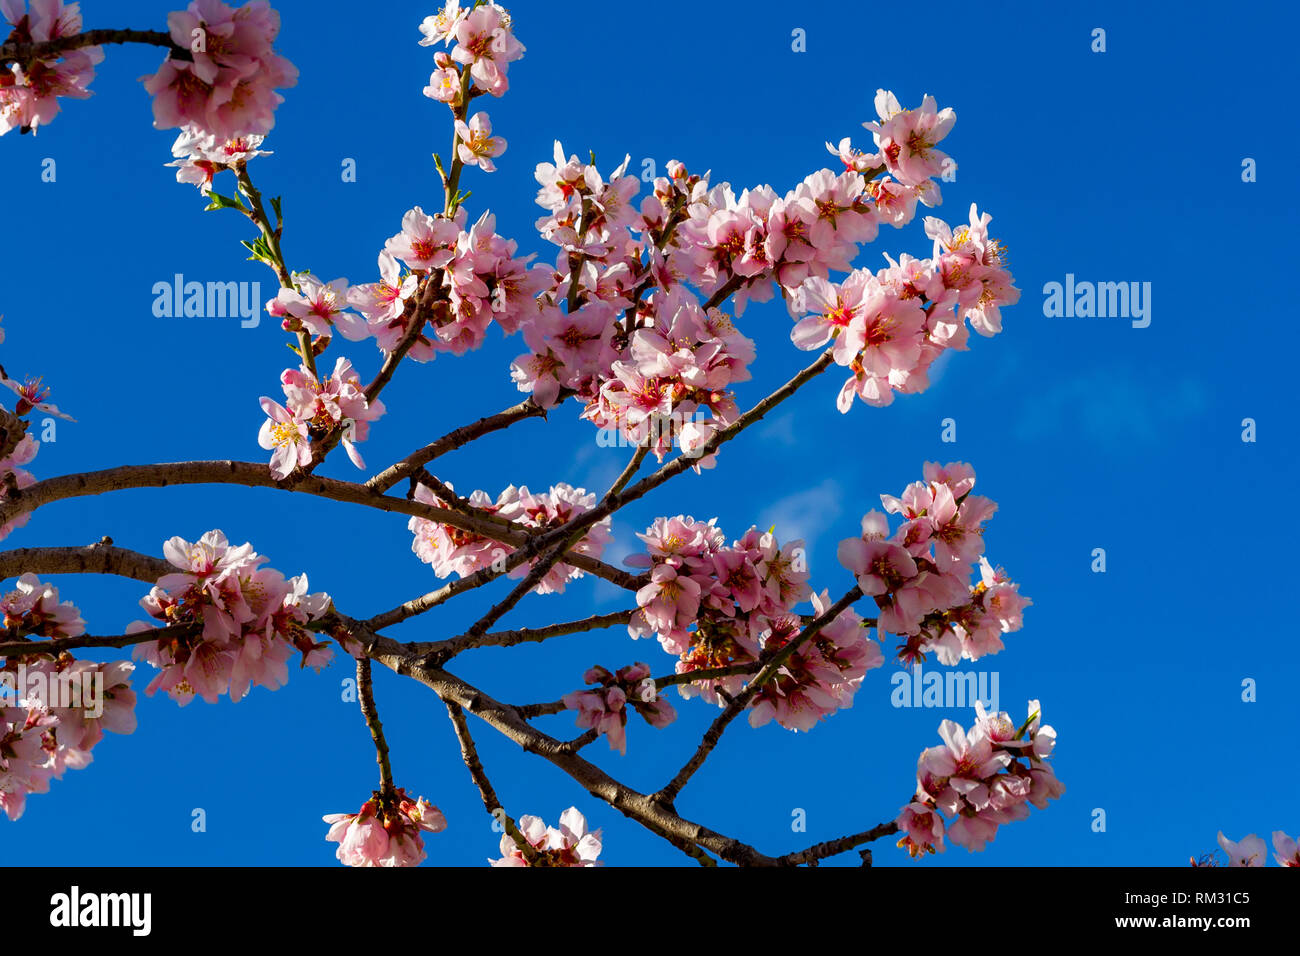 Almond blossom, prunus dulcis in the Jalon Valley, Costa Blanca, Spain - Stock Image